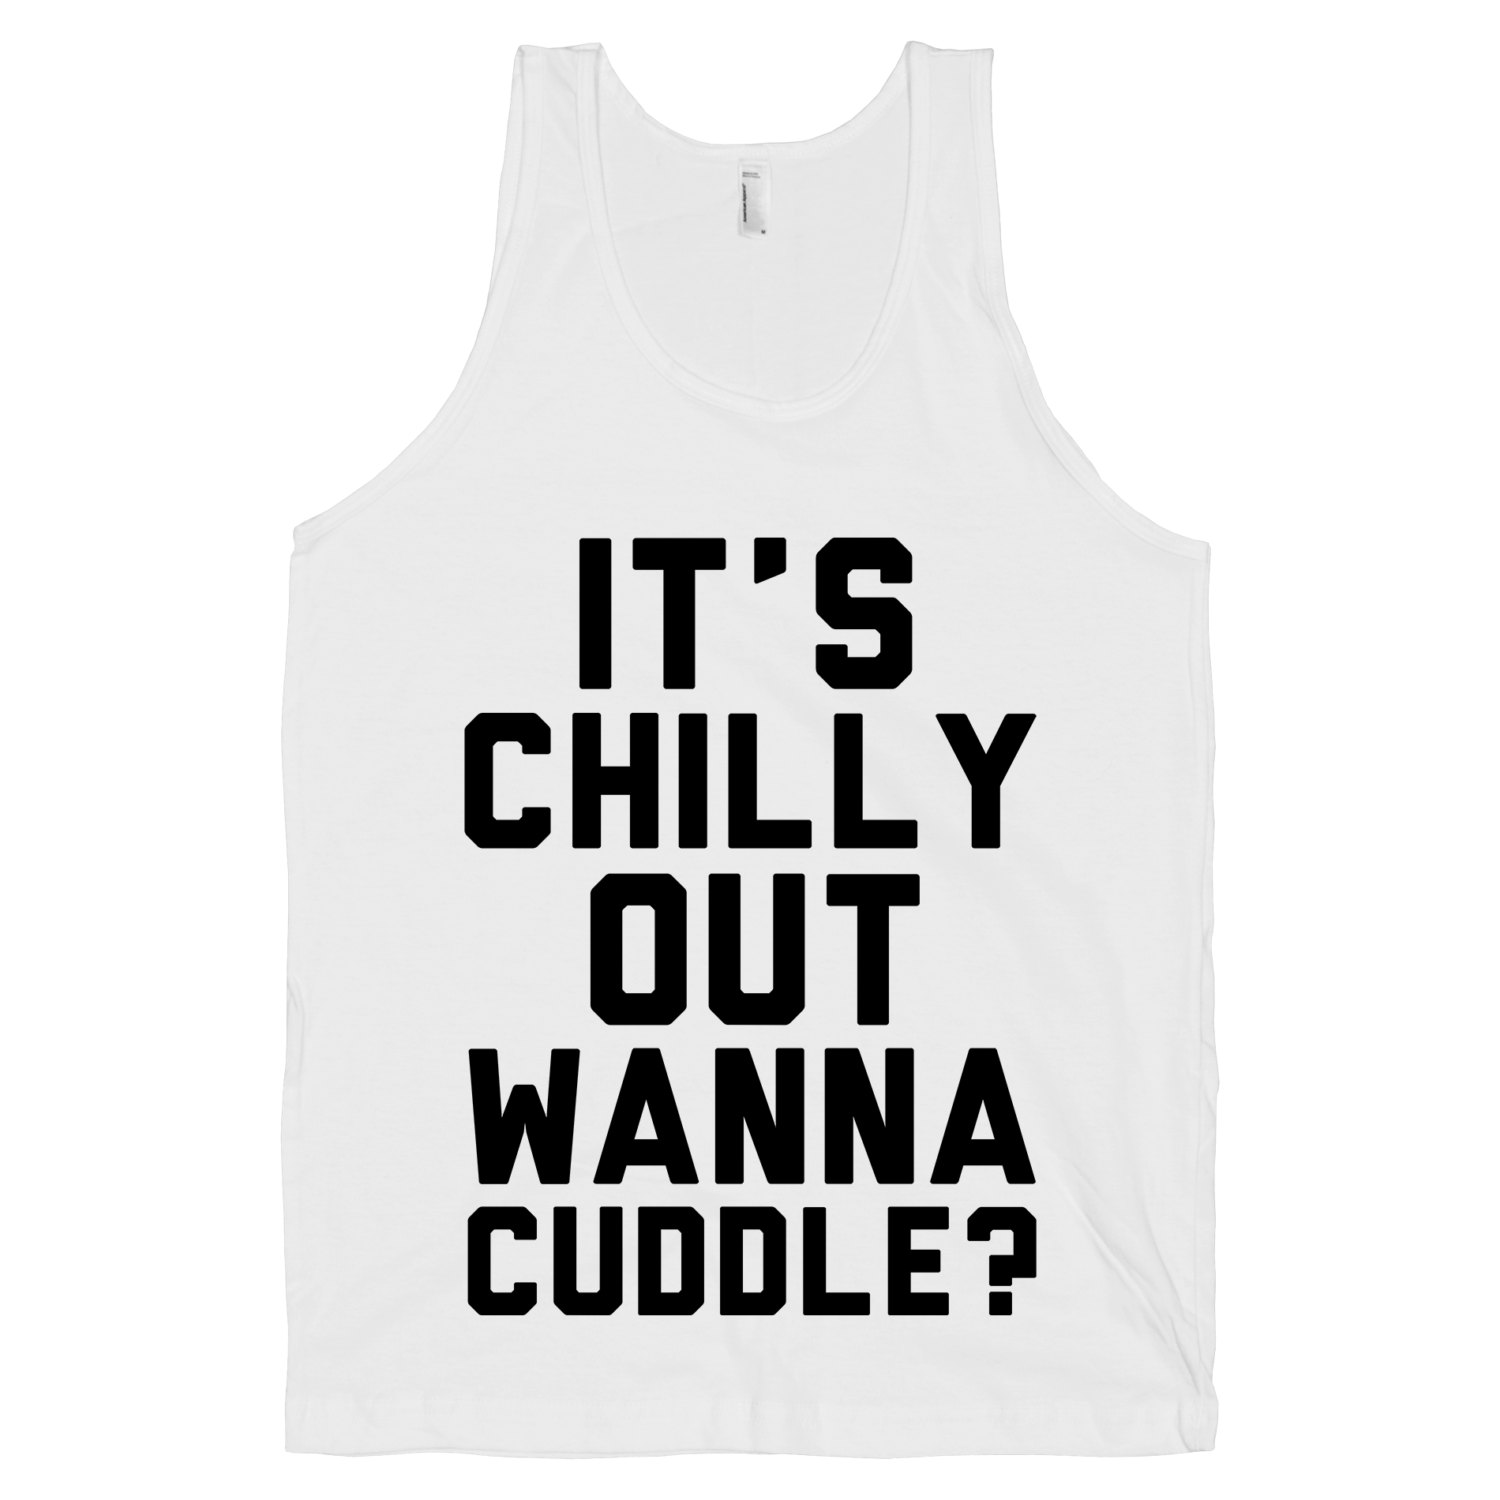 I Want To Cuddle With You Quotes: Wanna Cuddle Quotes. QuotesGram